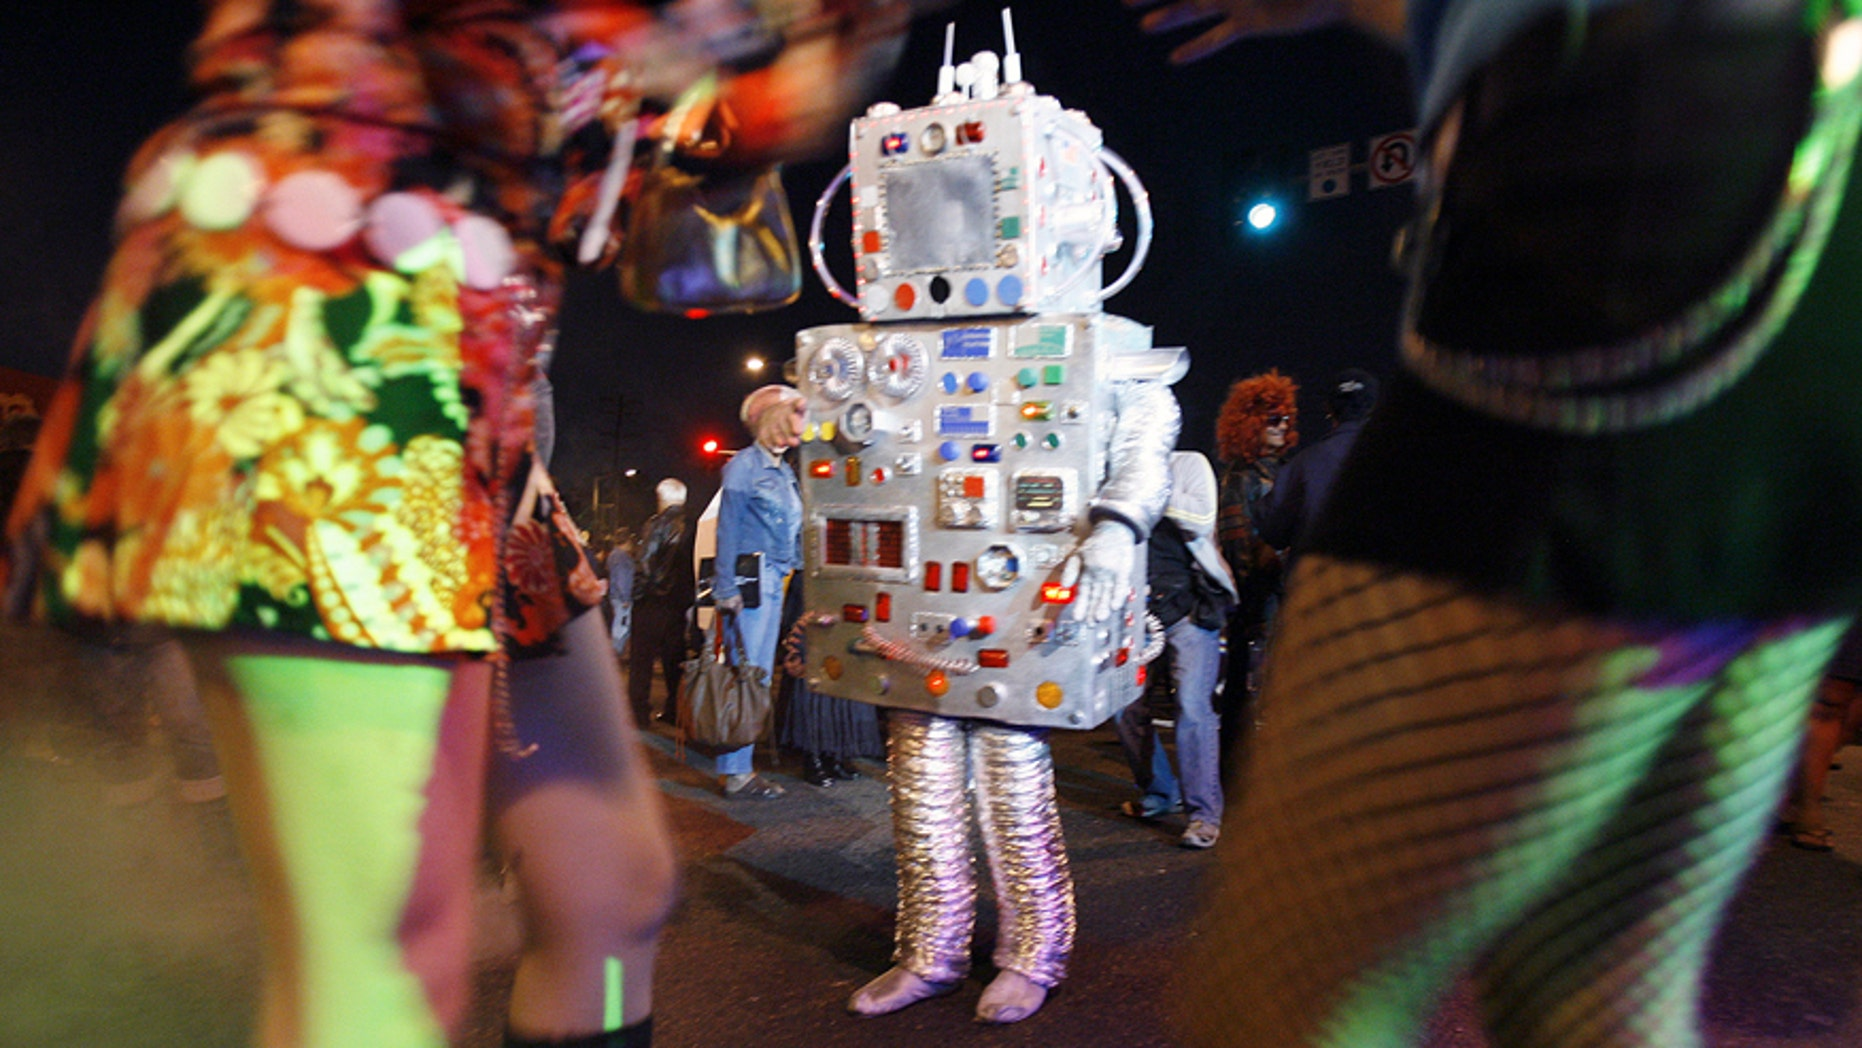 File photo: People in costume dance during the 19th annual Halloween costume carnaval in West Hollywood, California October 31, 2006. (REUTERS/Mario Anzuoni)